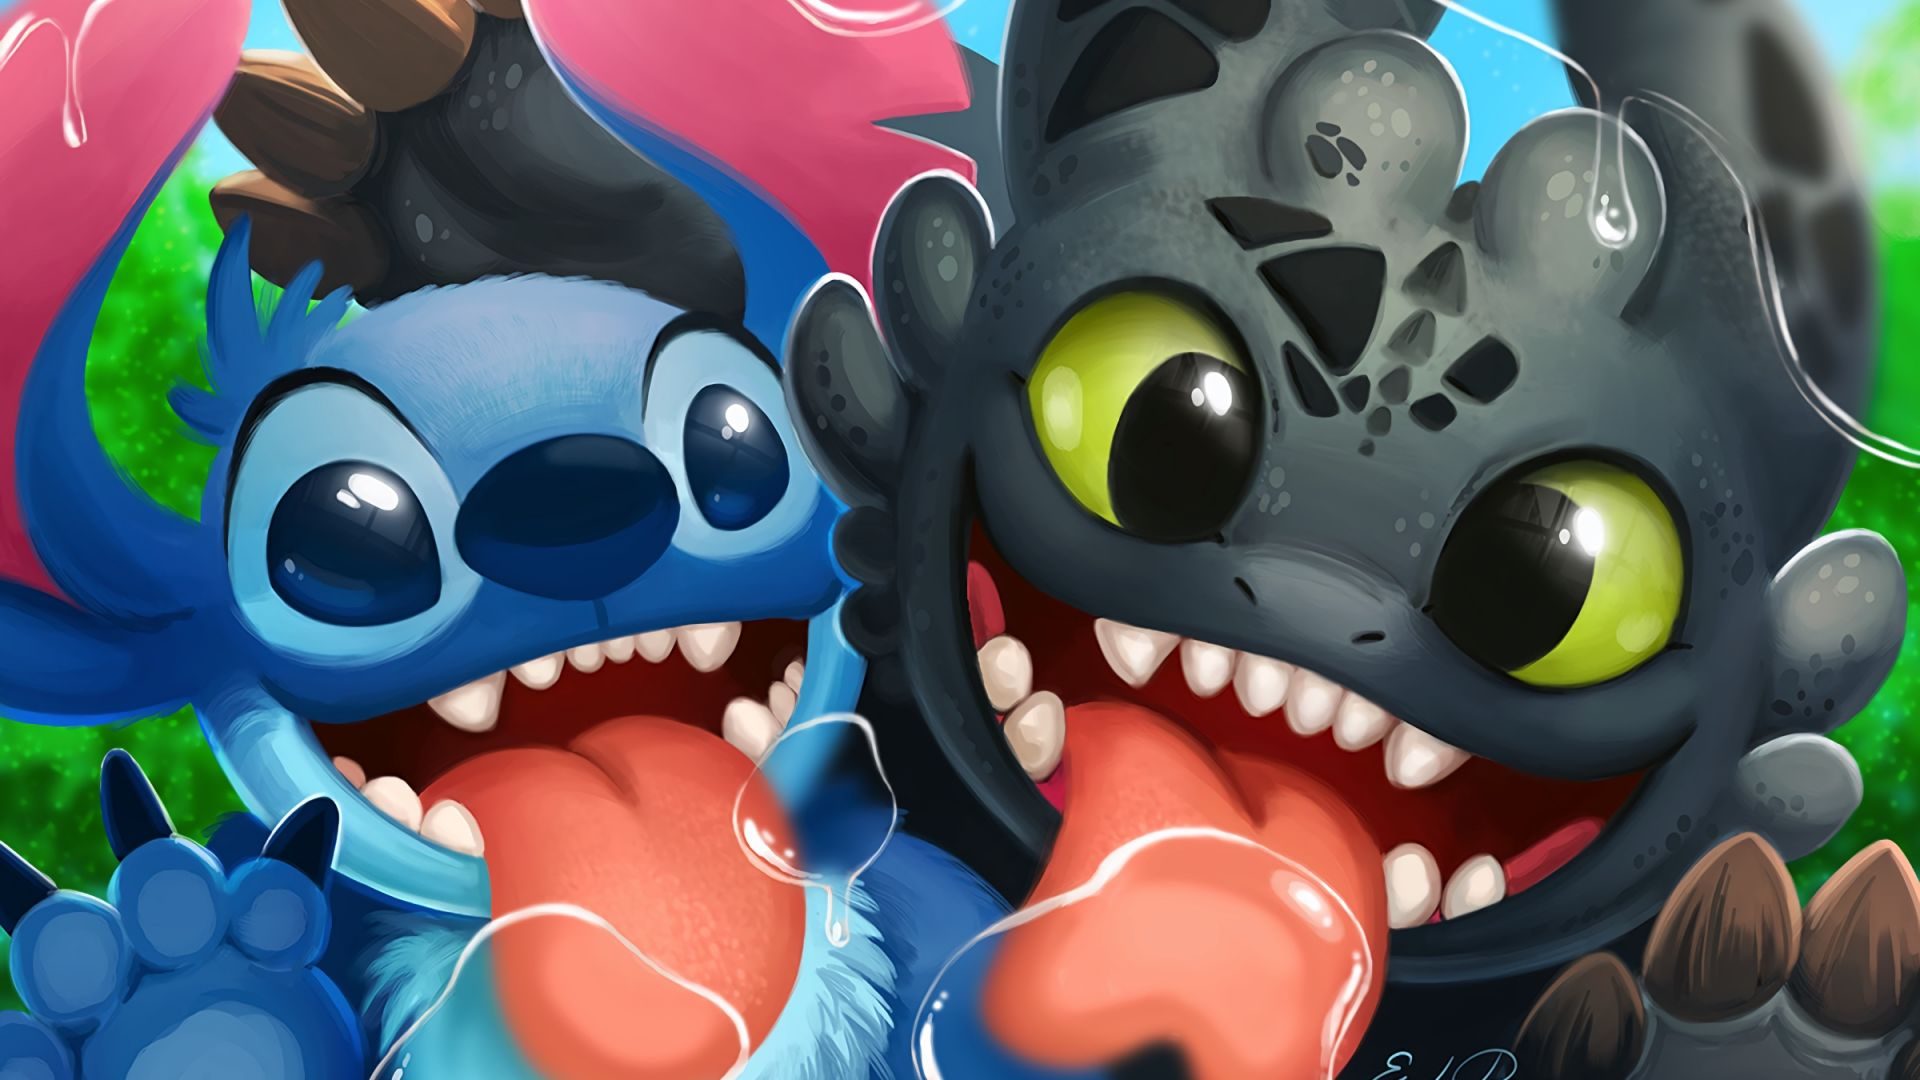 Wallpaper Stitch, Lilo And Stitch, toothless, How to Train Your Dragon, crossover